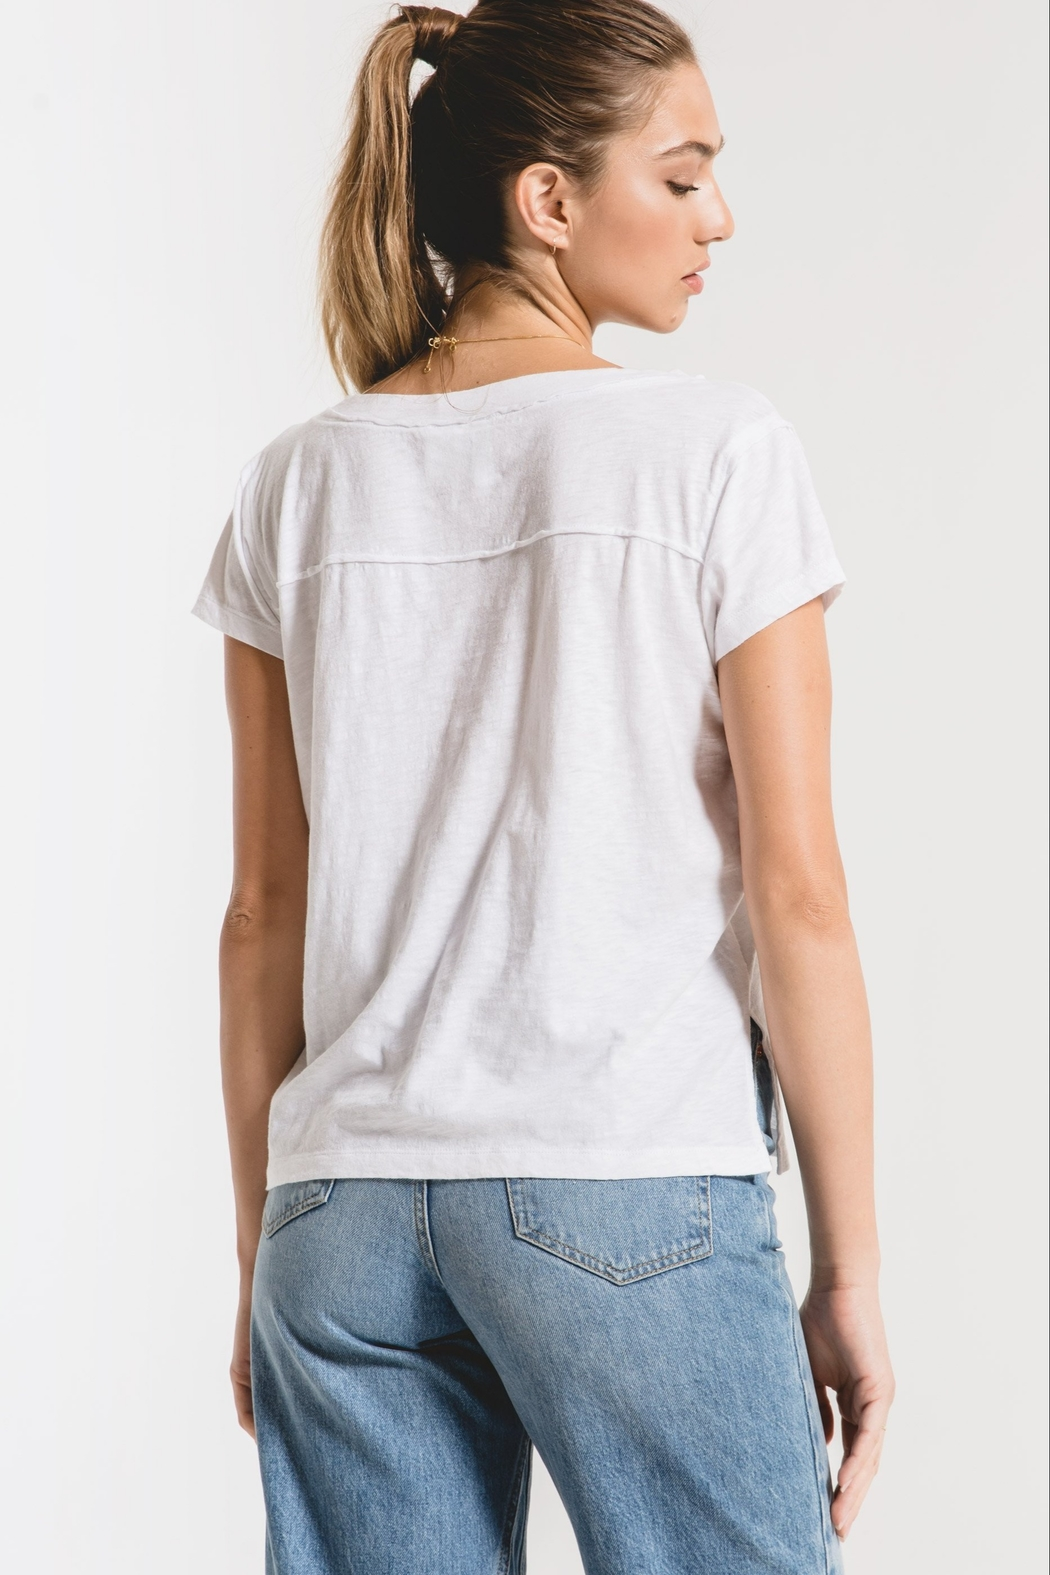 z supply The Cotton Slub Easy VNeck Tee - Front Full Image